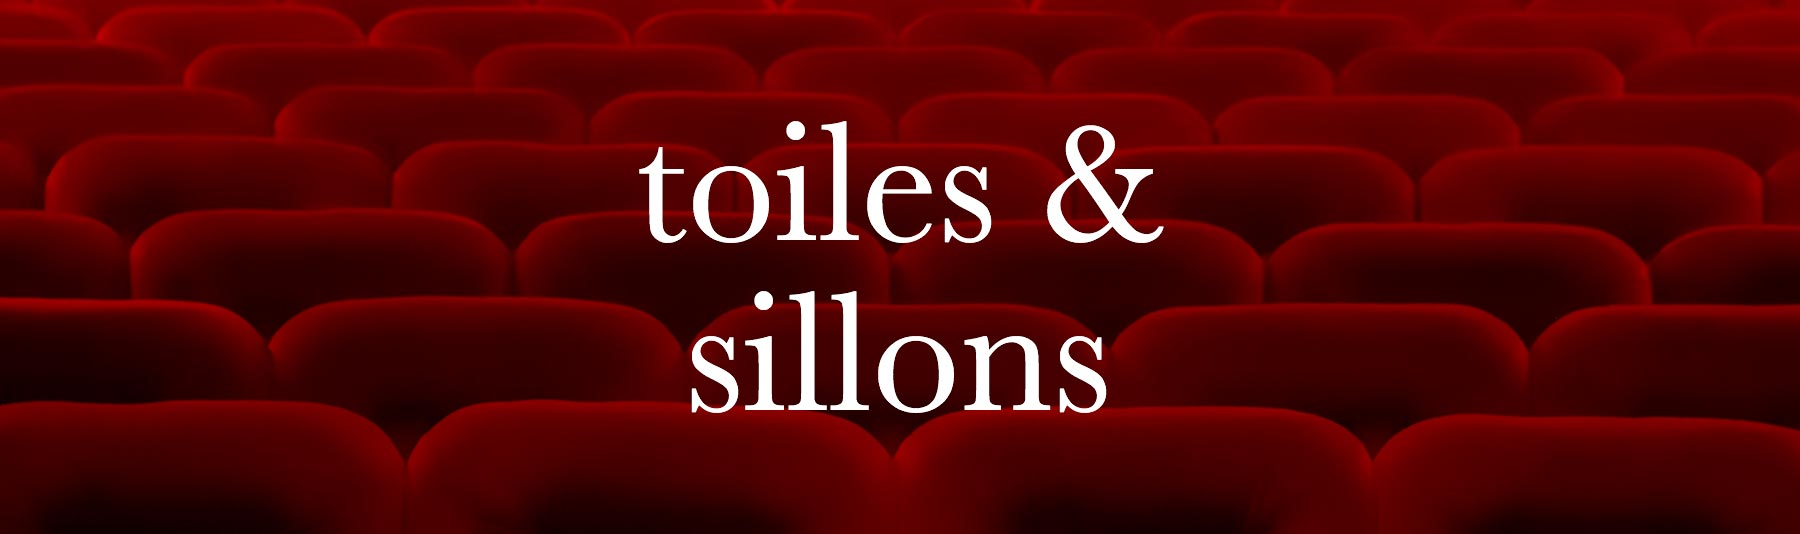 Toiles & Sillons